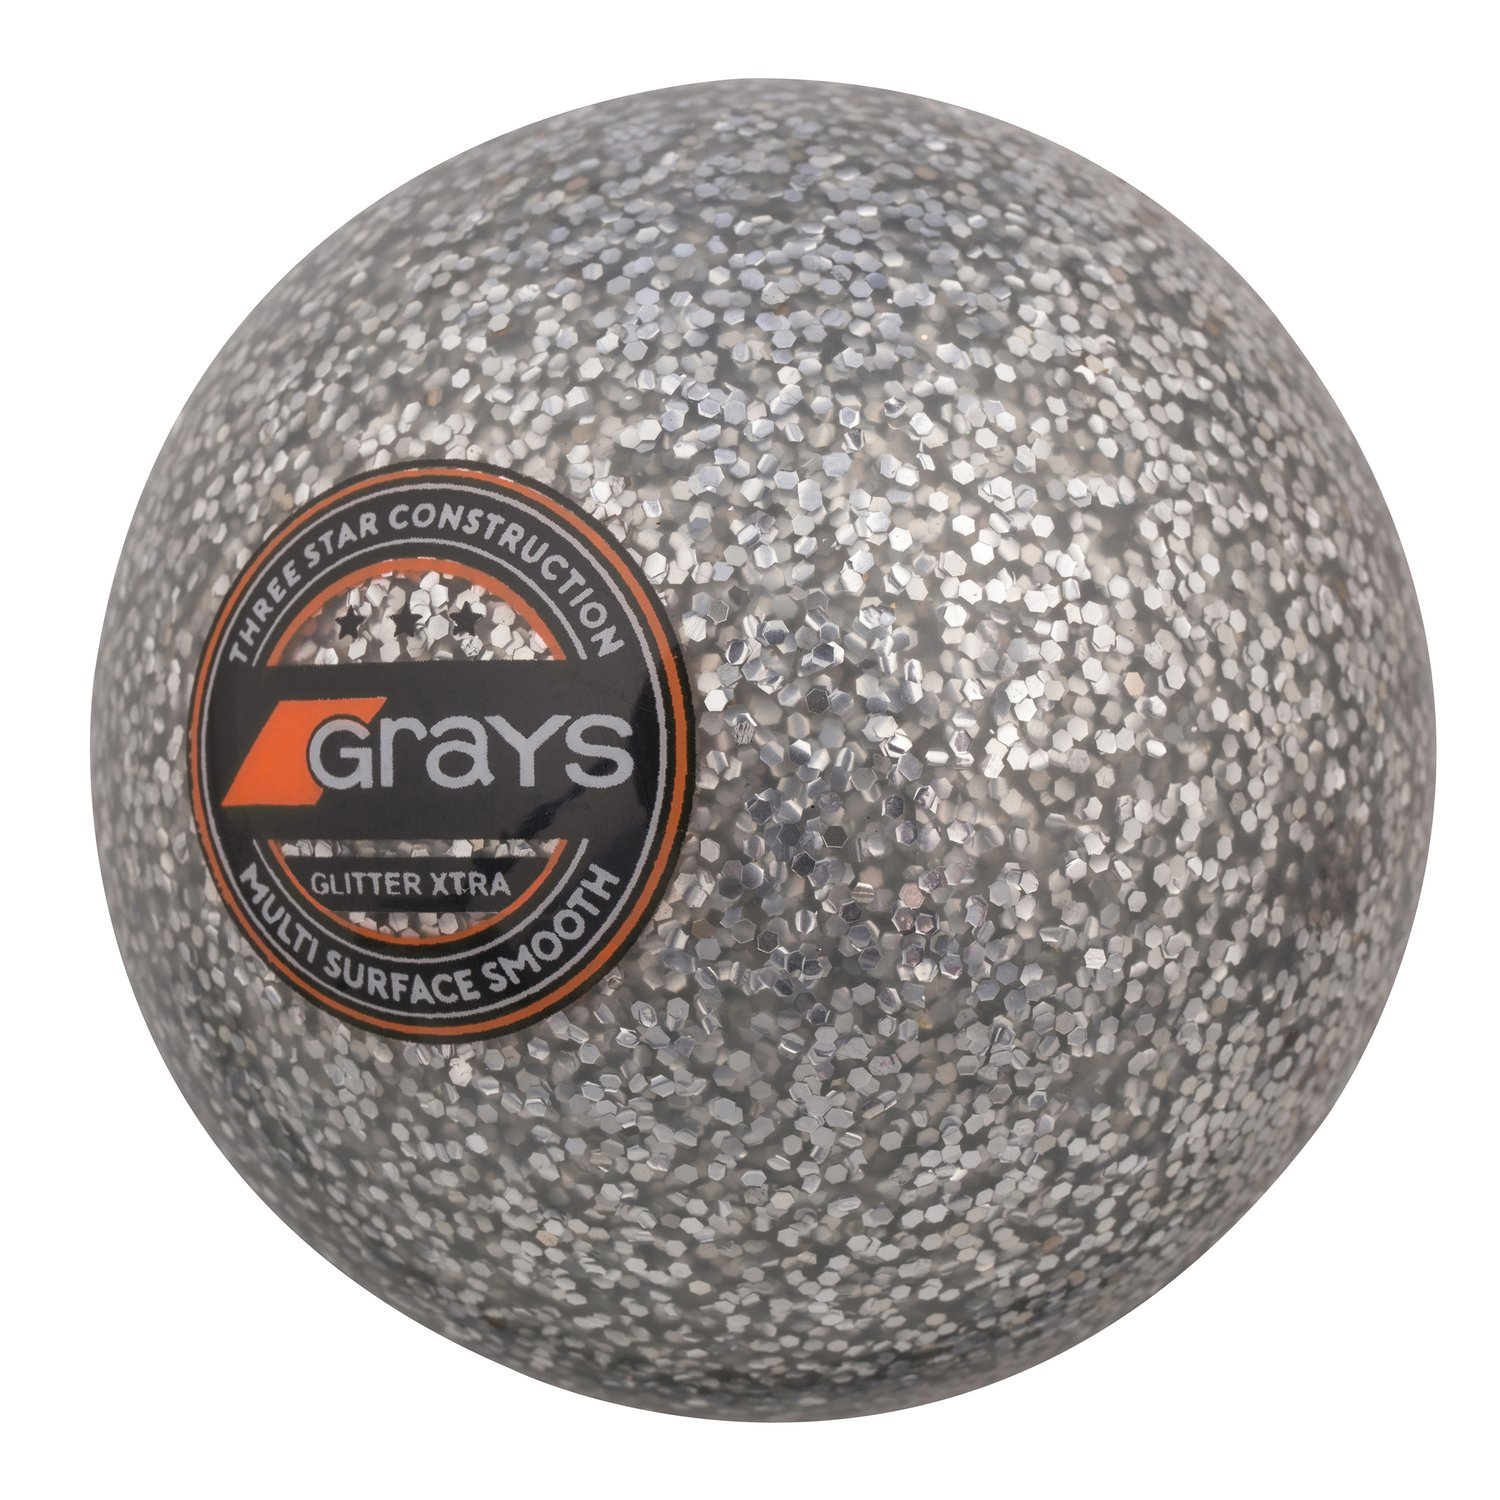 Grays Glitter Xtra Ball